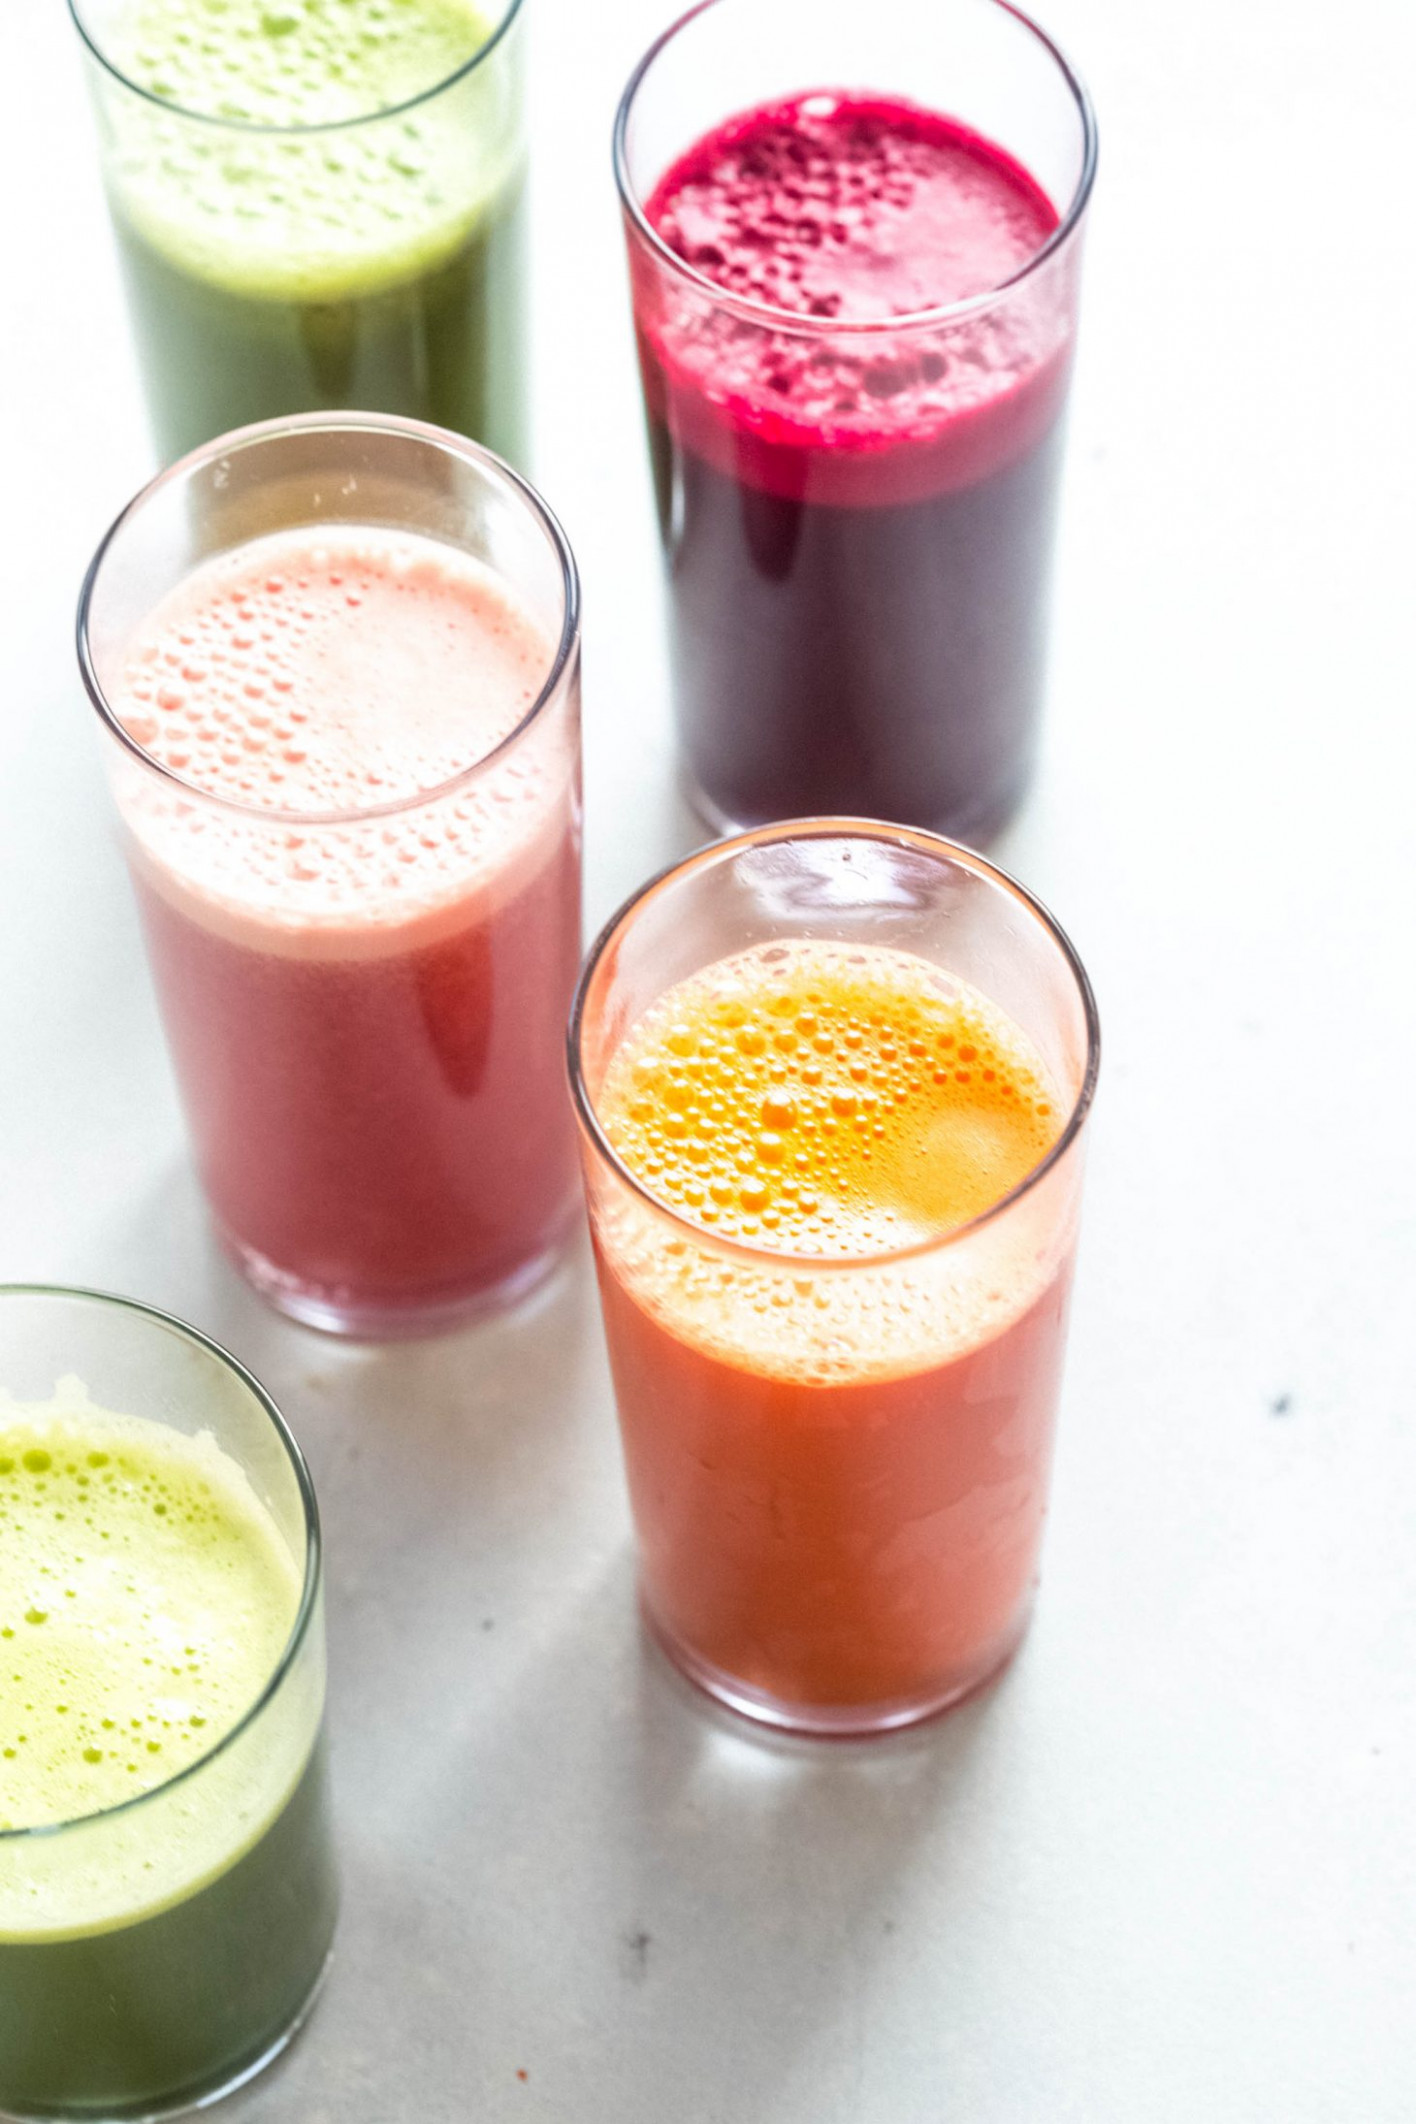 Healthy Juicing Recipes // Juice Cleanse | Platings + Pairings - healthy green juice recipes